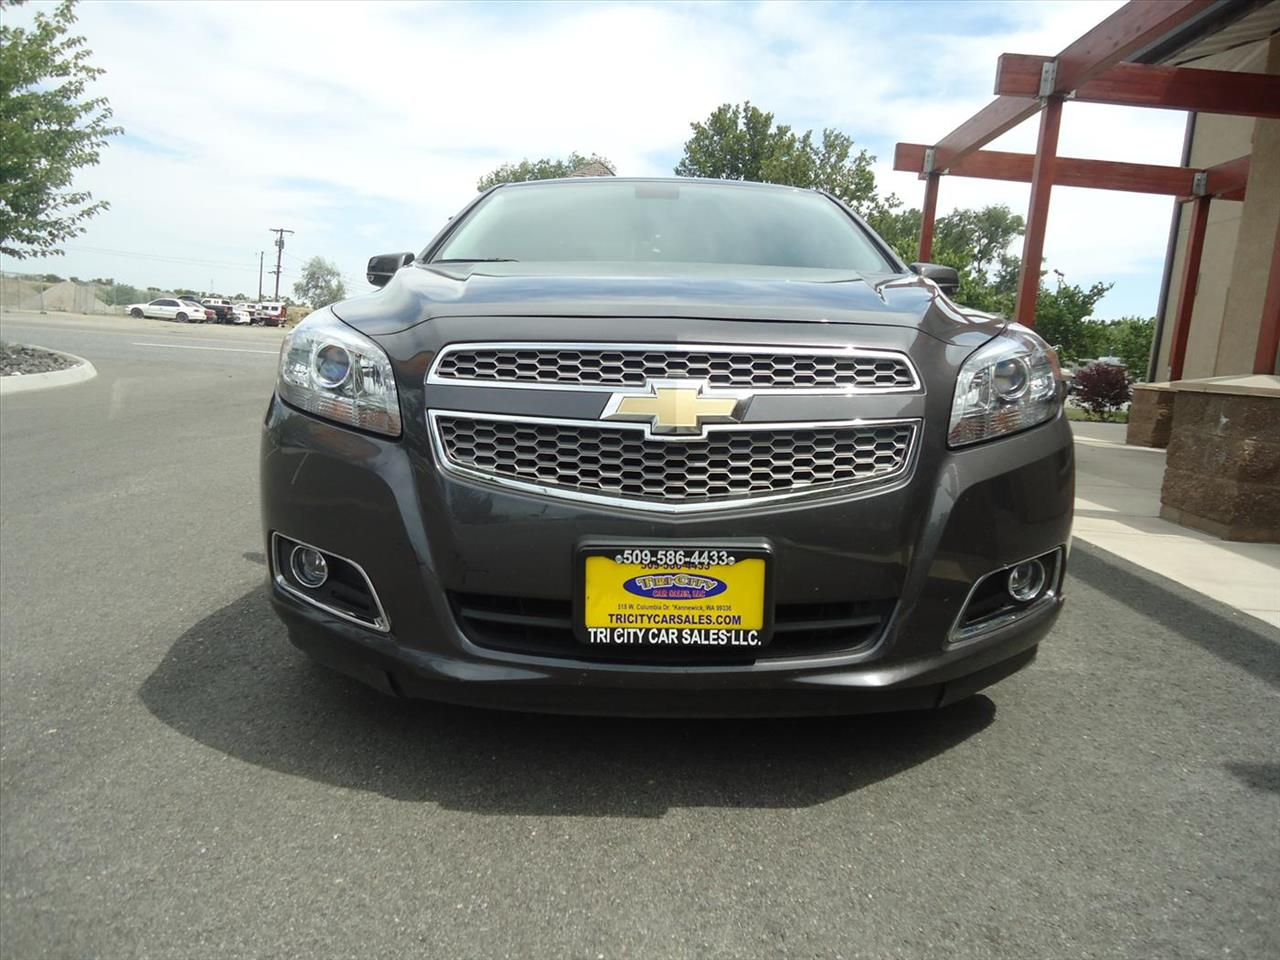 2013 chevrolet malibu ltz 4dr sedan w 1lz in kennewick for Tri city motor sales